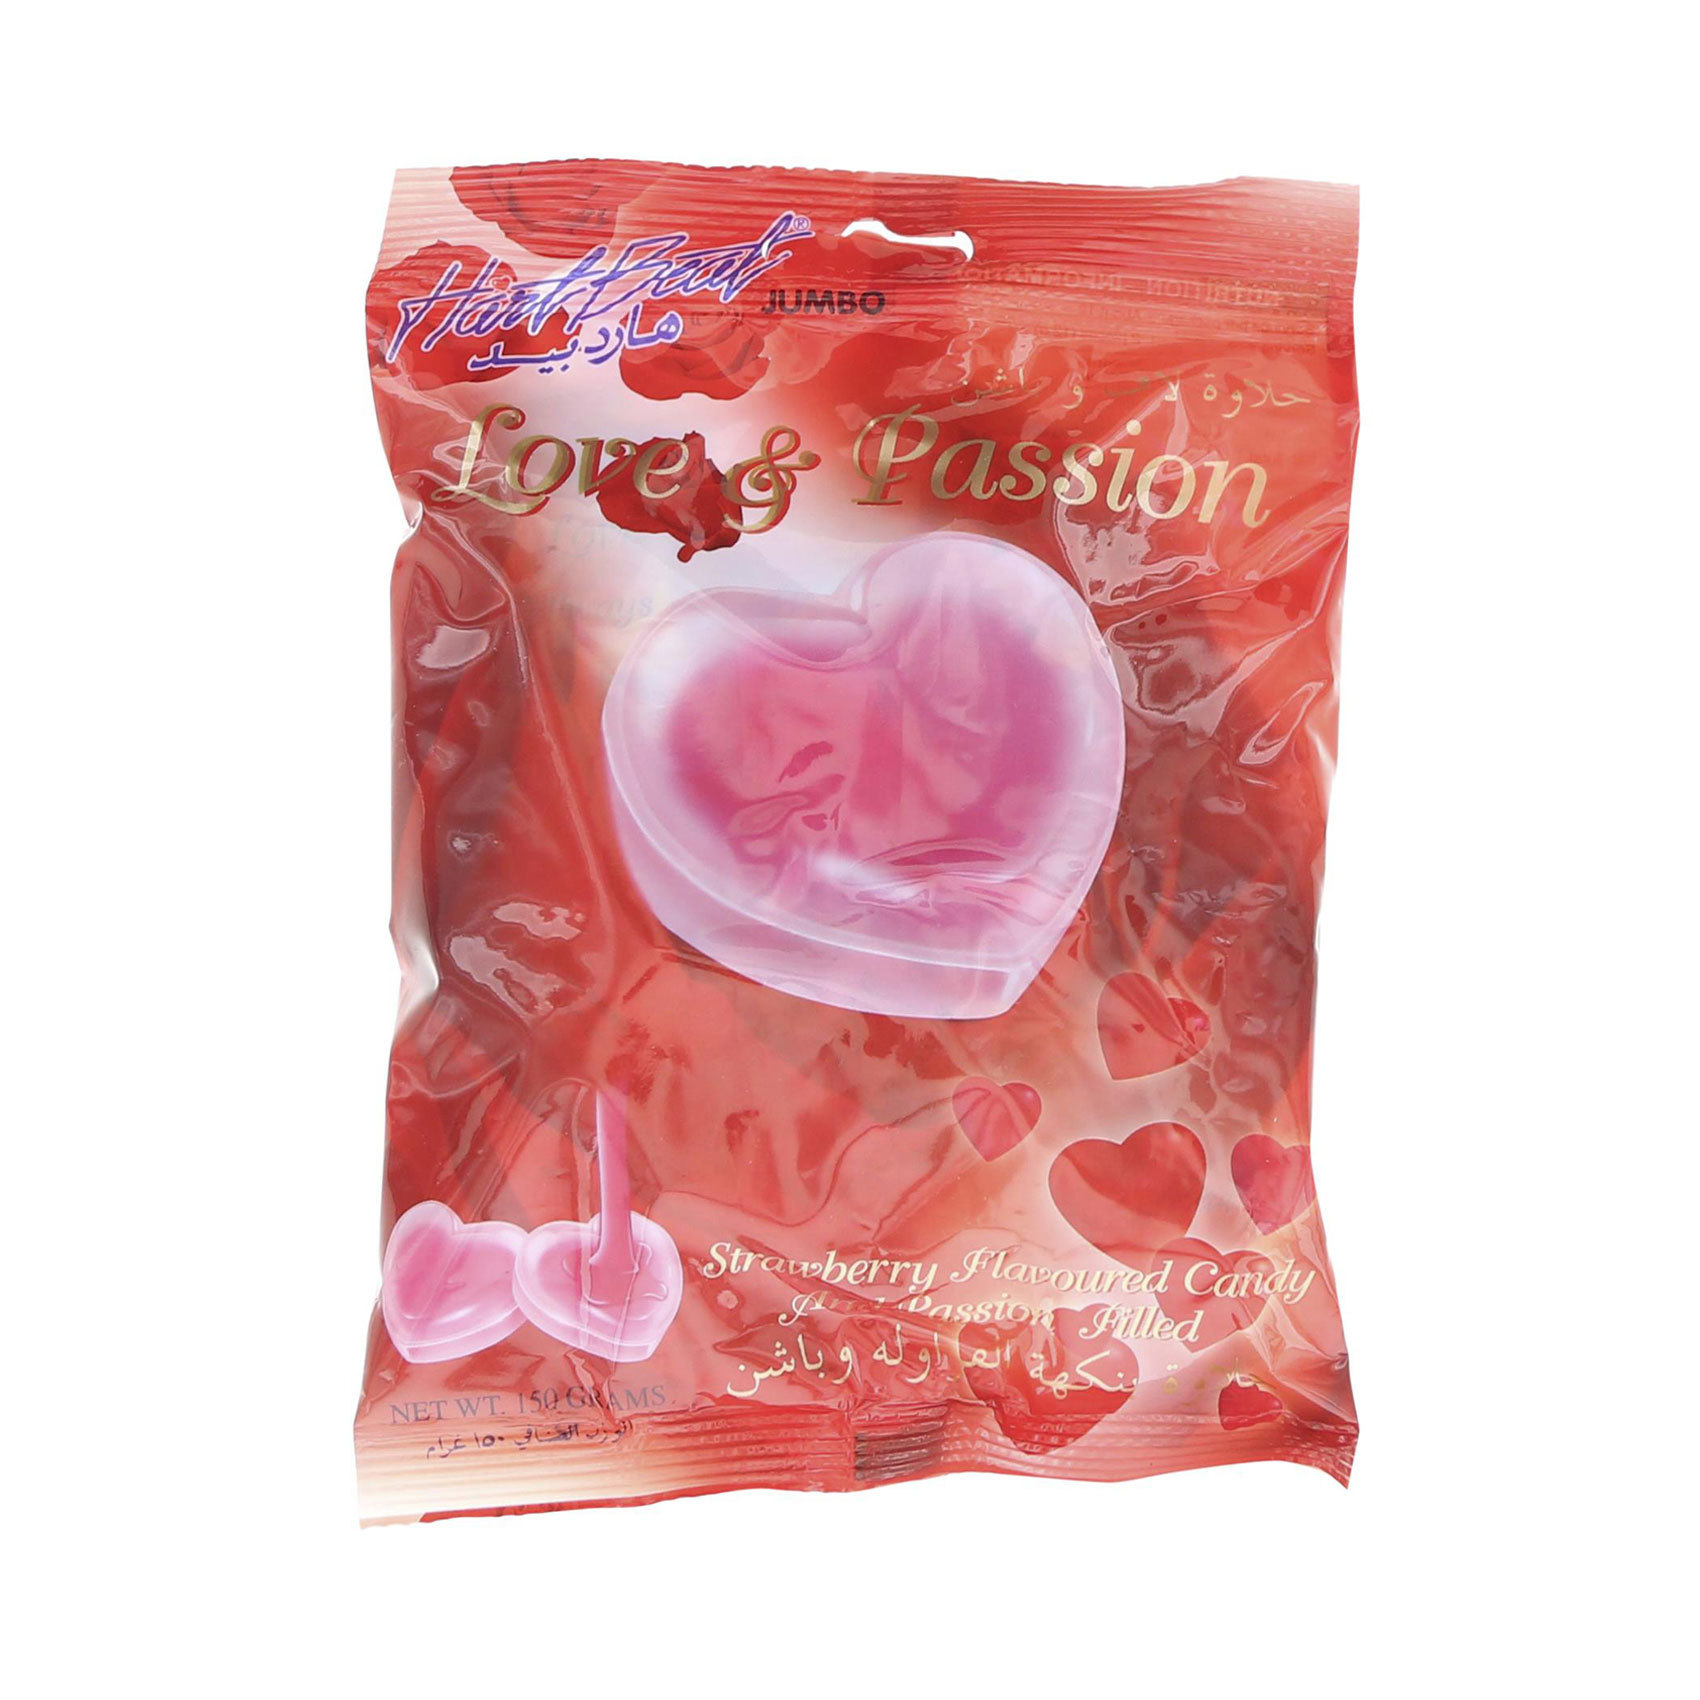 HEARTBEAT CANDY LOVE/PASSION 150G